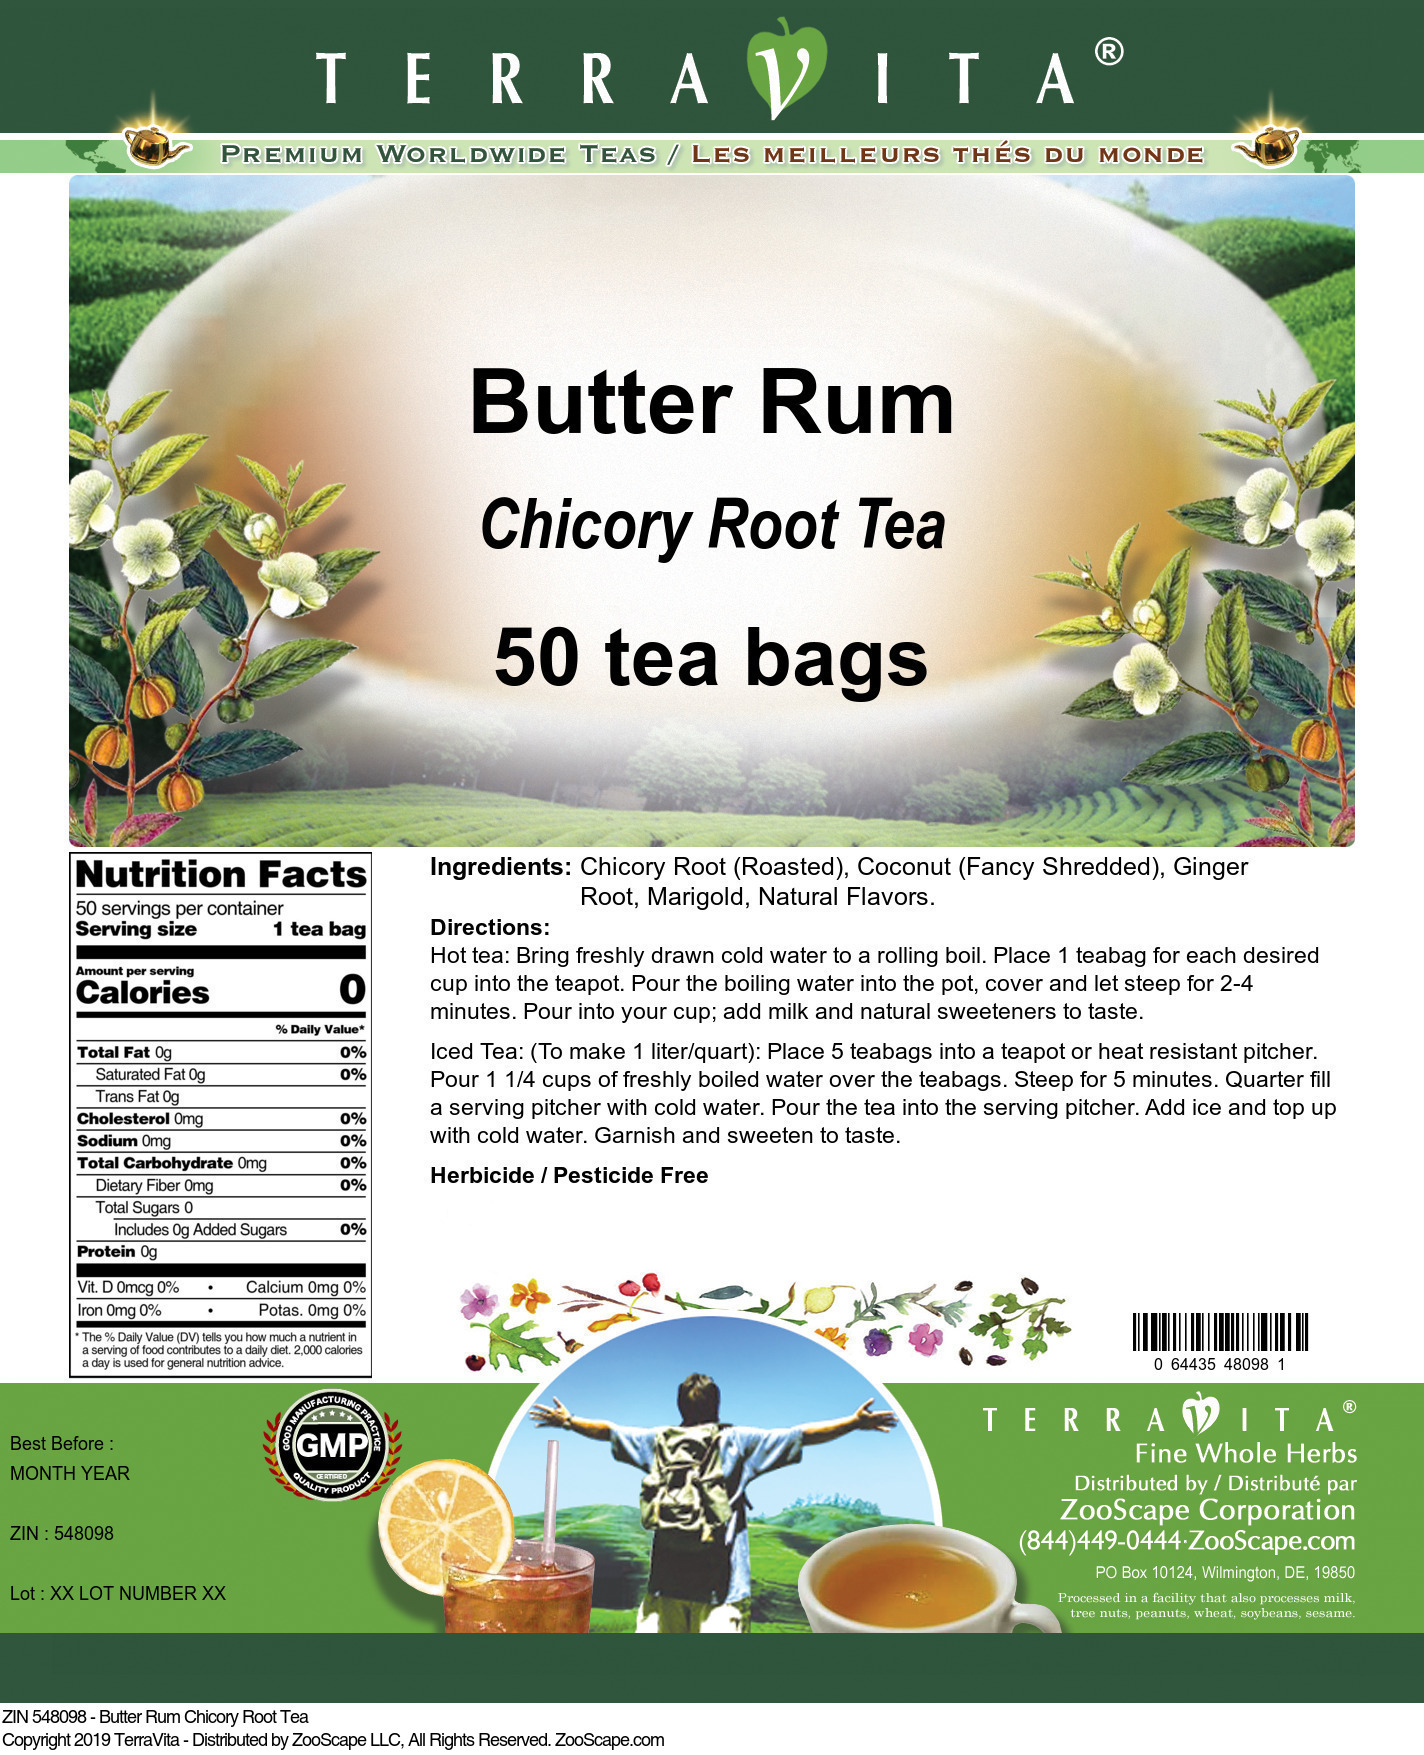 Butter Rum Chicory Root